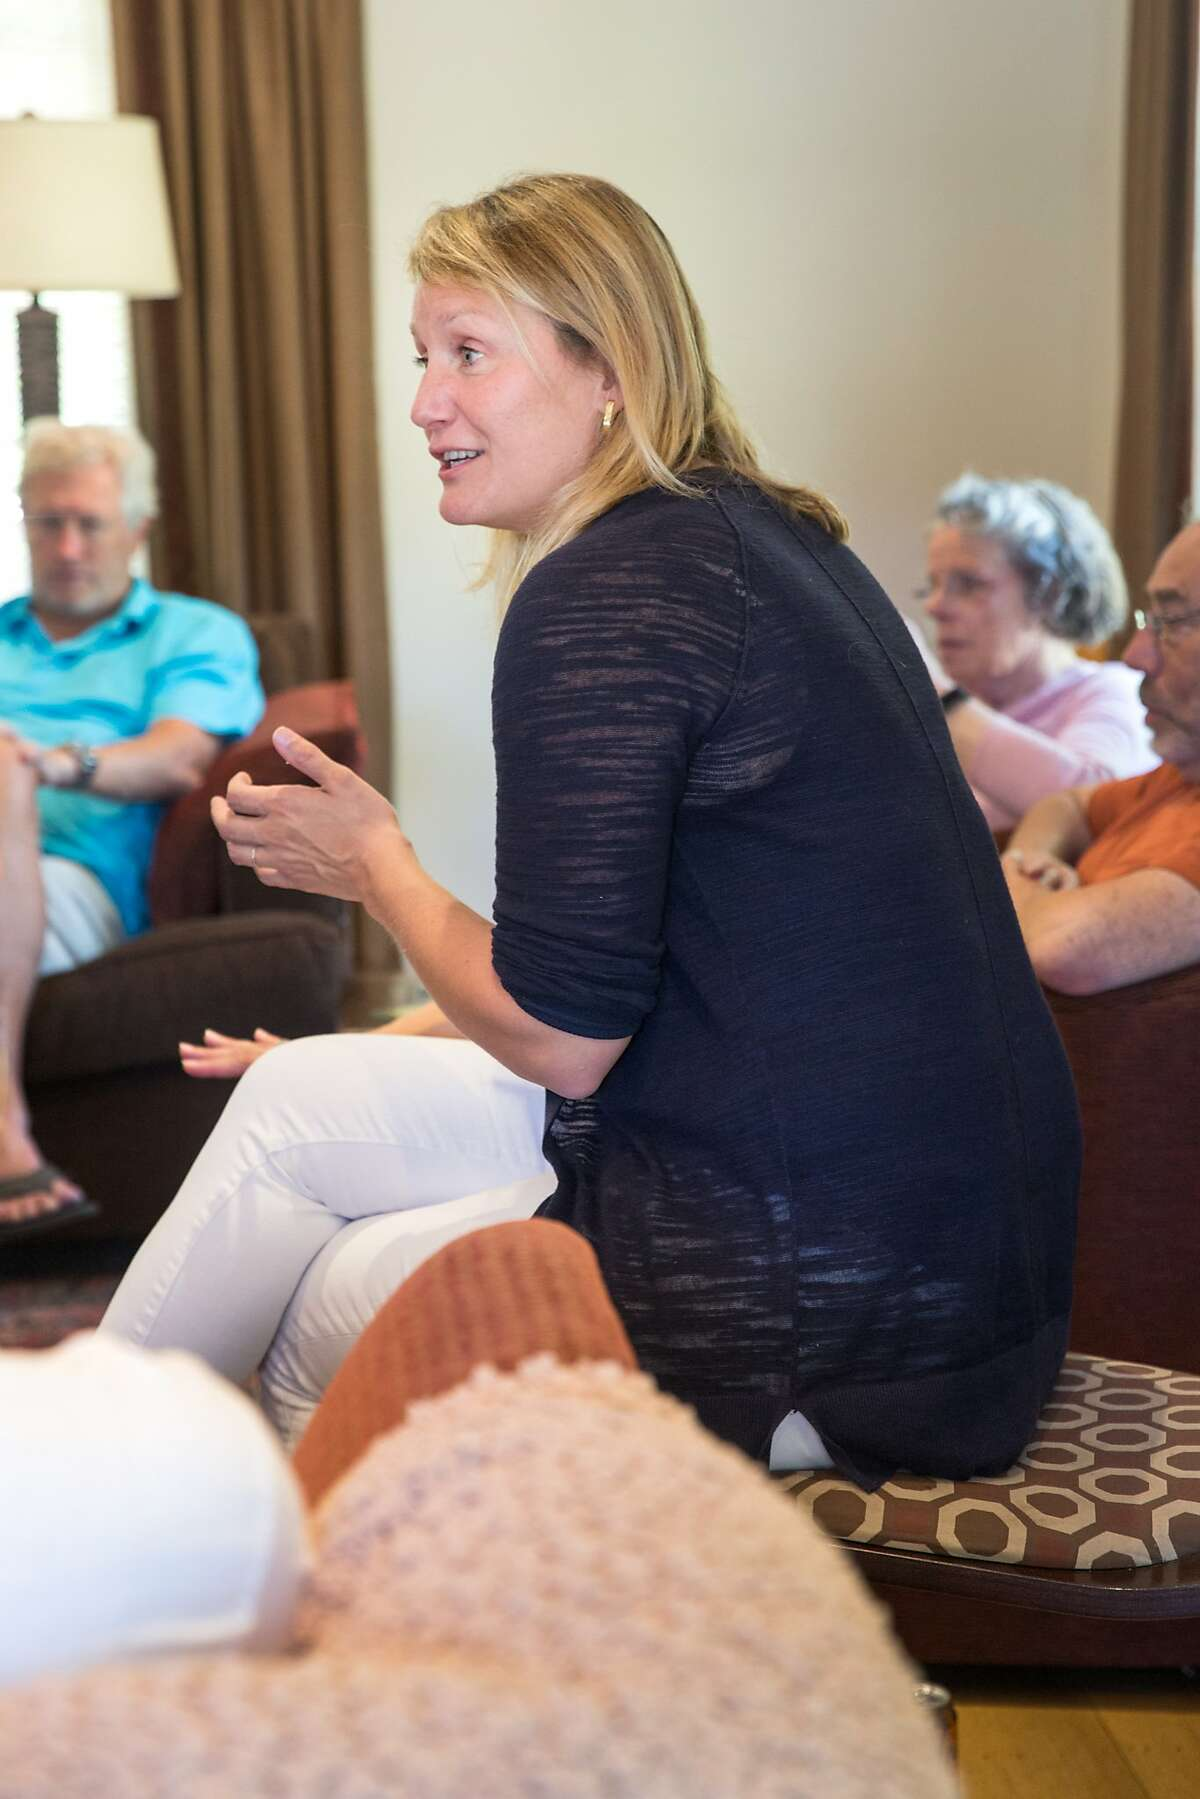 Buffy Wicks, a candidate for the 15th State Assembly district, talks with supporters during a house party hosted by Carmen Murray, leader in the local Organizing For Action group. On Sunday, October 7, 2018 in Oakland Calif.